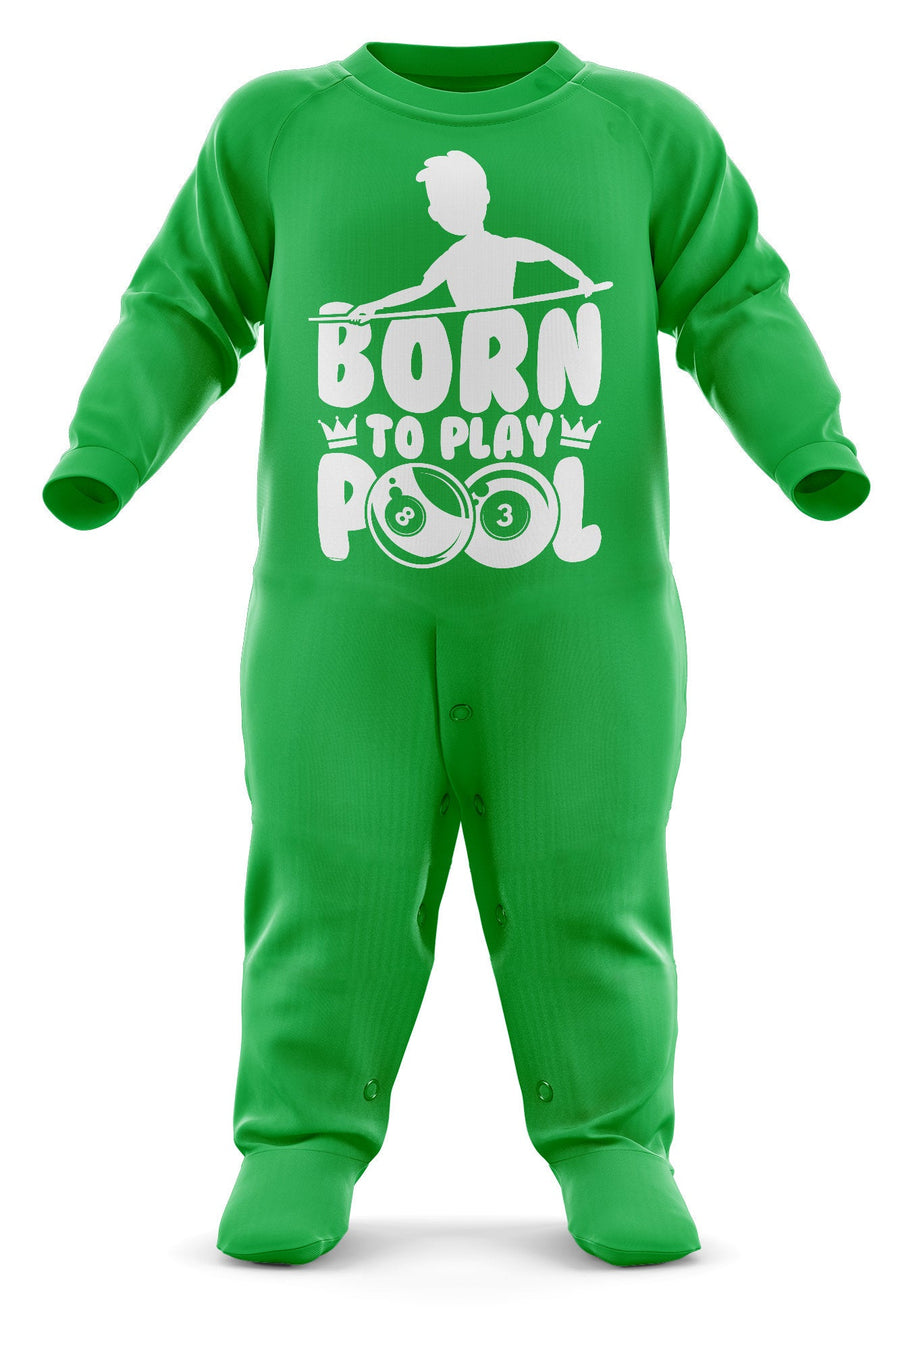 Born To Play Pool Babygrow - Pool Baby Romper Suit - Billiards Babies First Christmas Gift - Birthday Present - Newborn Romper